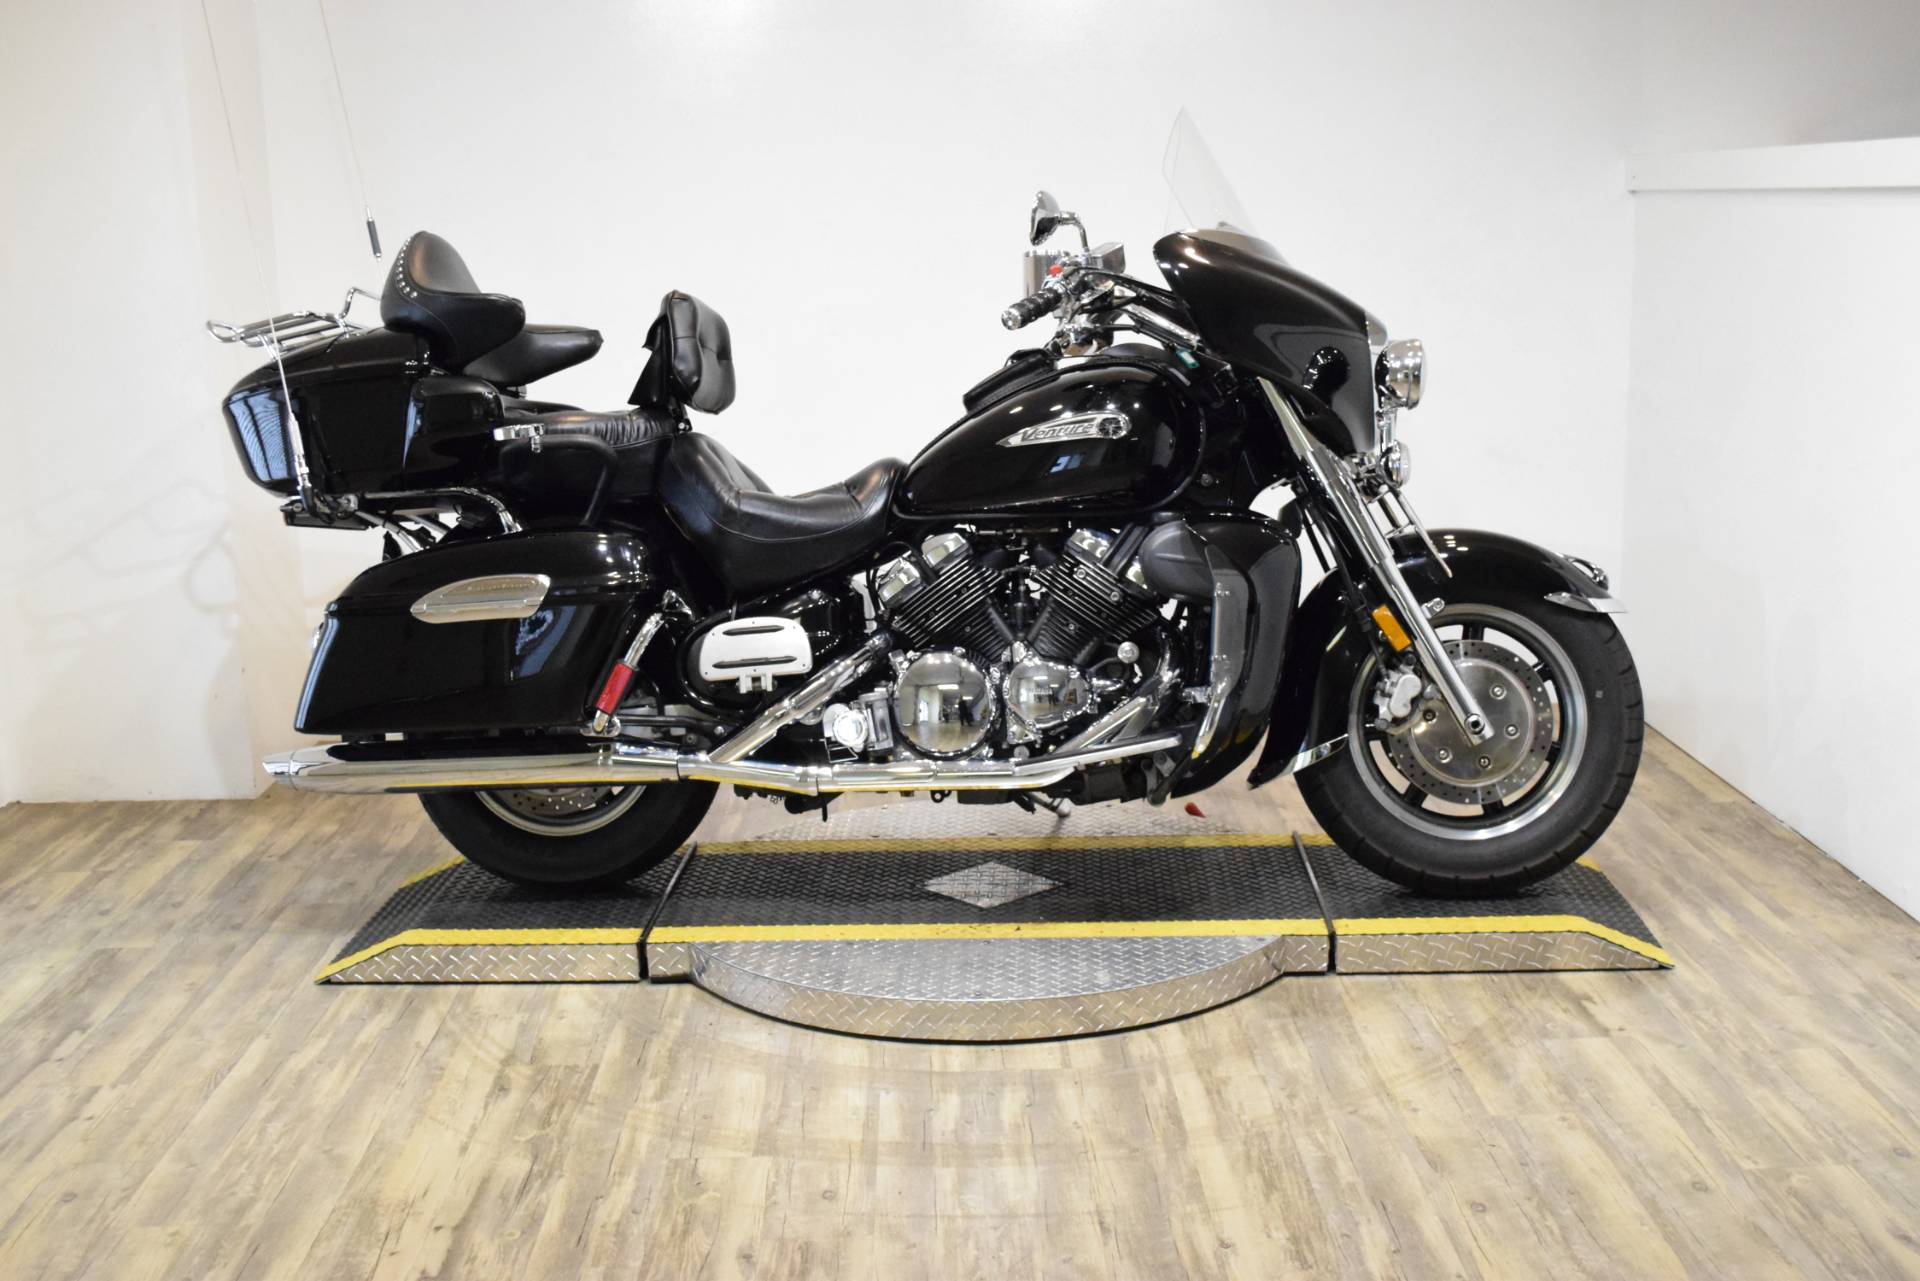 2007 Yamaha Royal Star® Midnight Venture Used Motorcycle for Sale ...